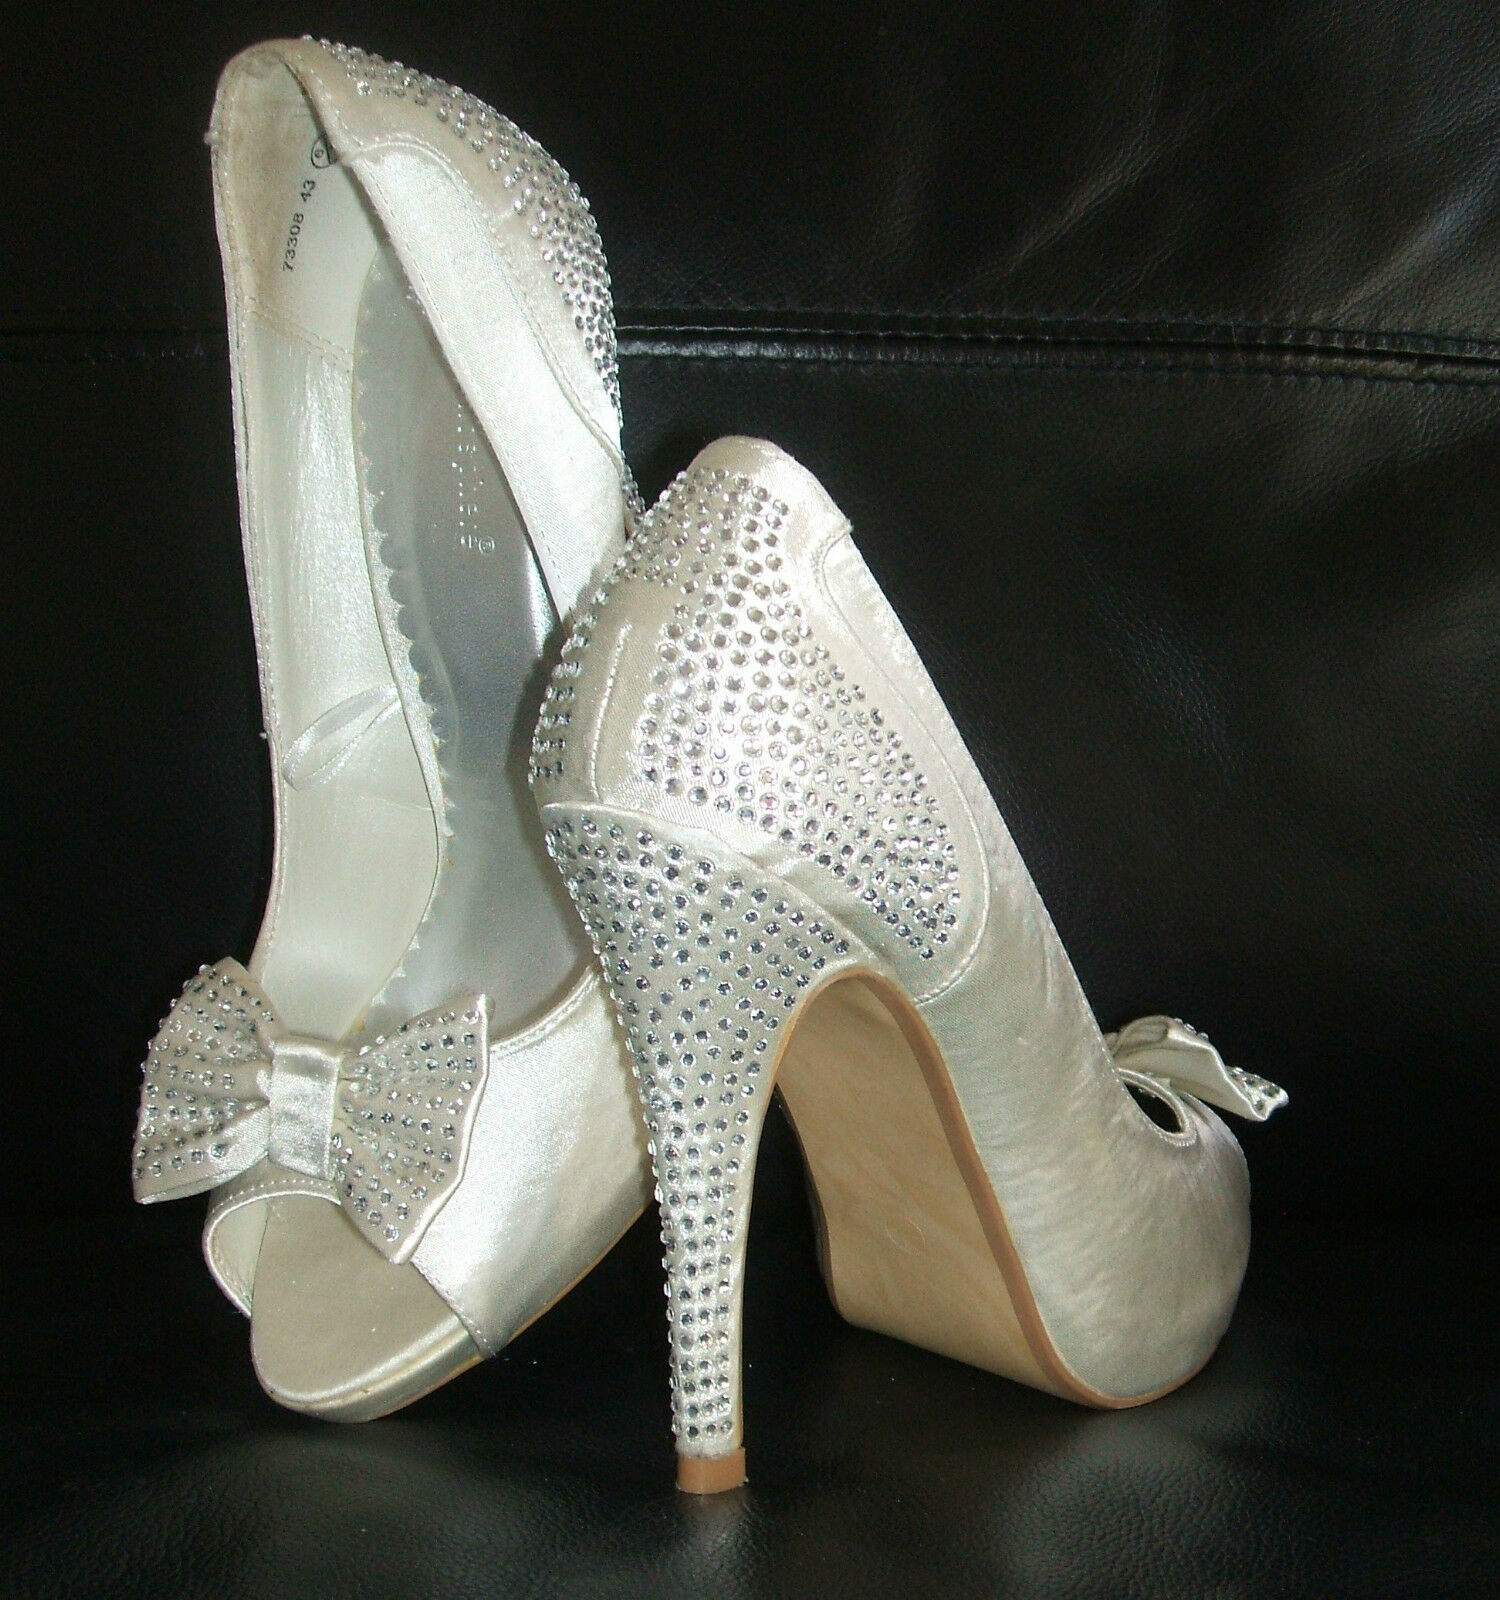 PRIMARK Taille 6 IVORY CREAM SATIN DIAMANTE HIGH HEEL PEEPTOE BRIDAL WEDDING chaussures